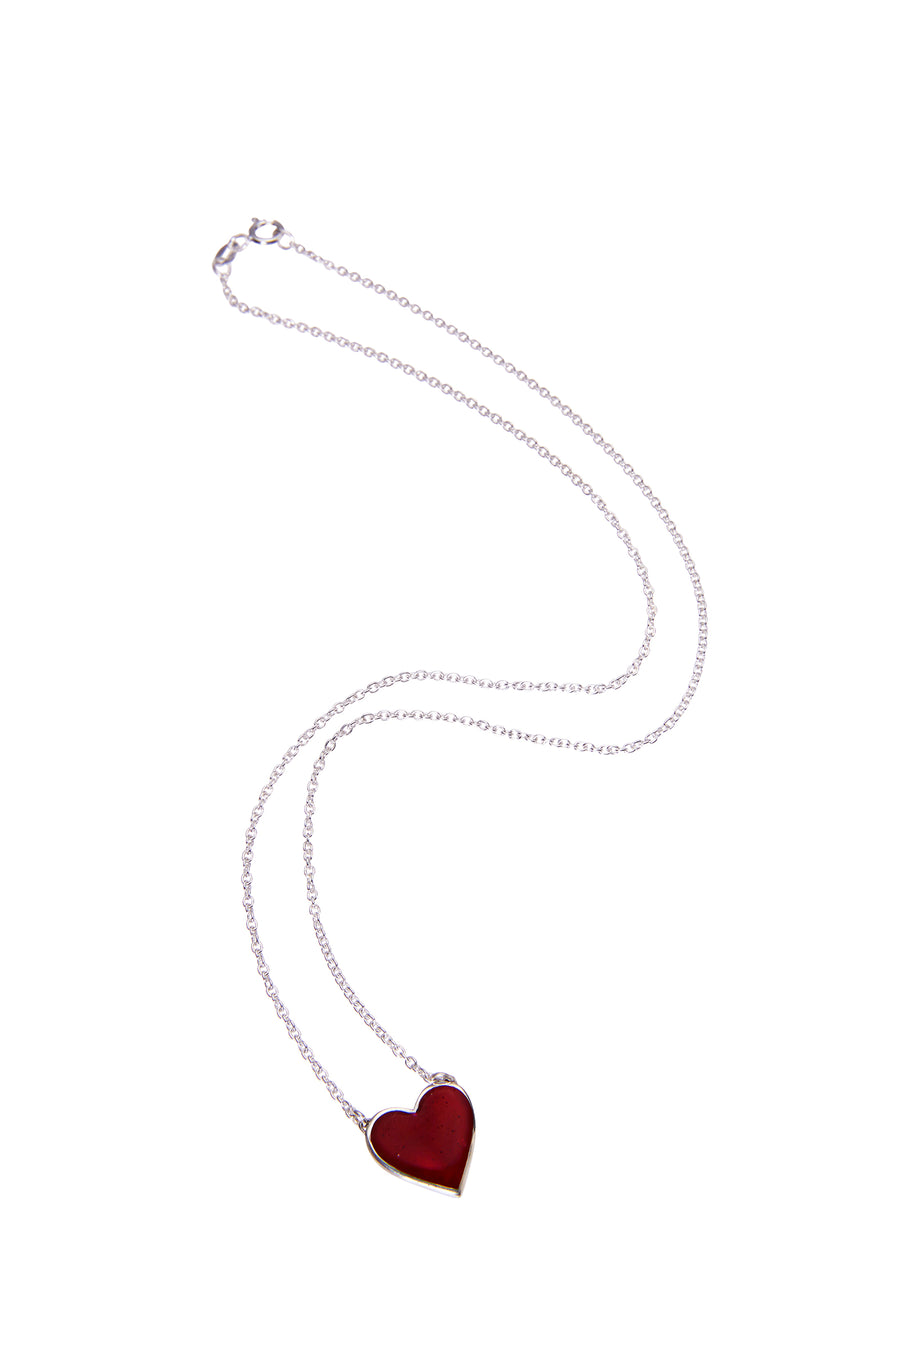 Bleeding Heart Necklace Silver - Serpent & the Swan